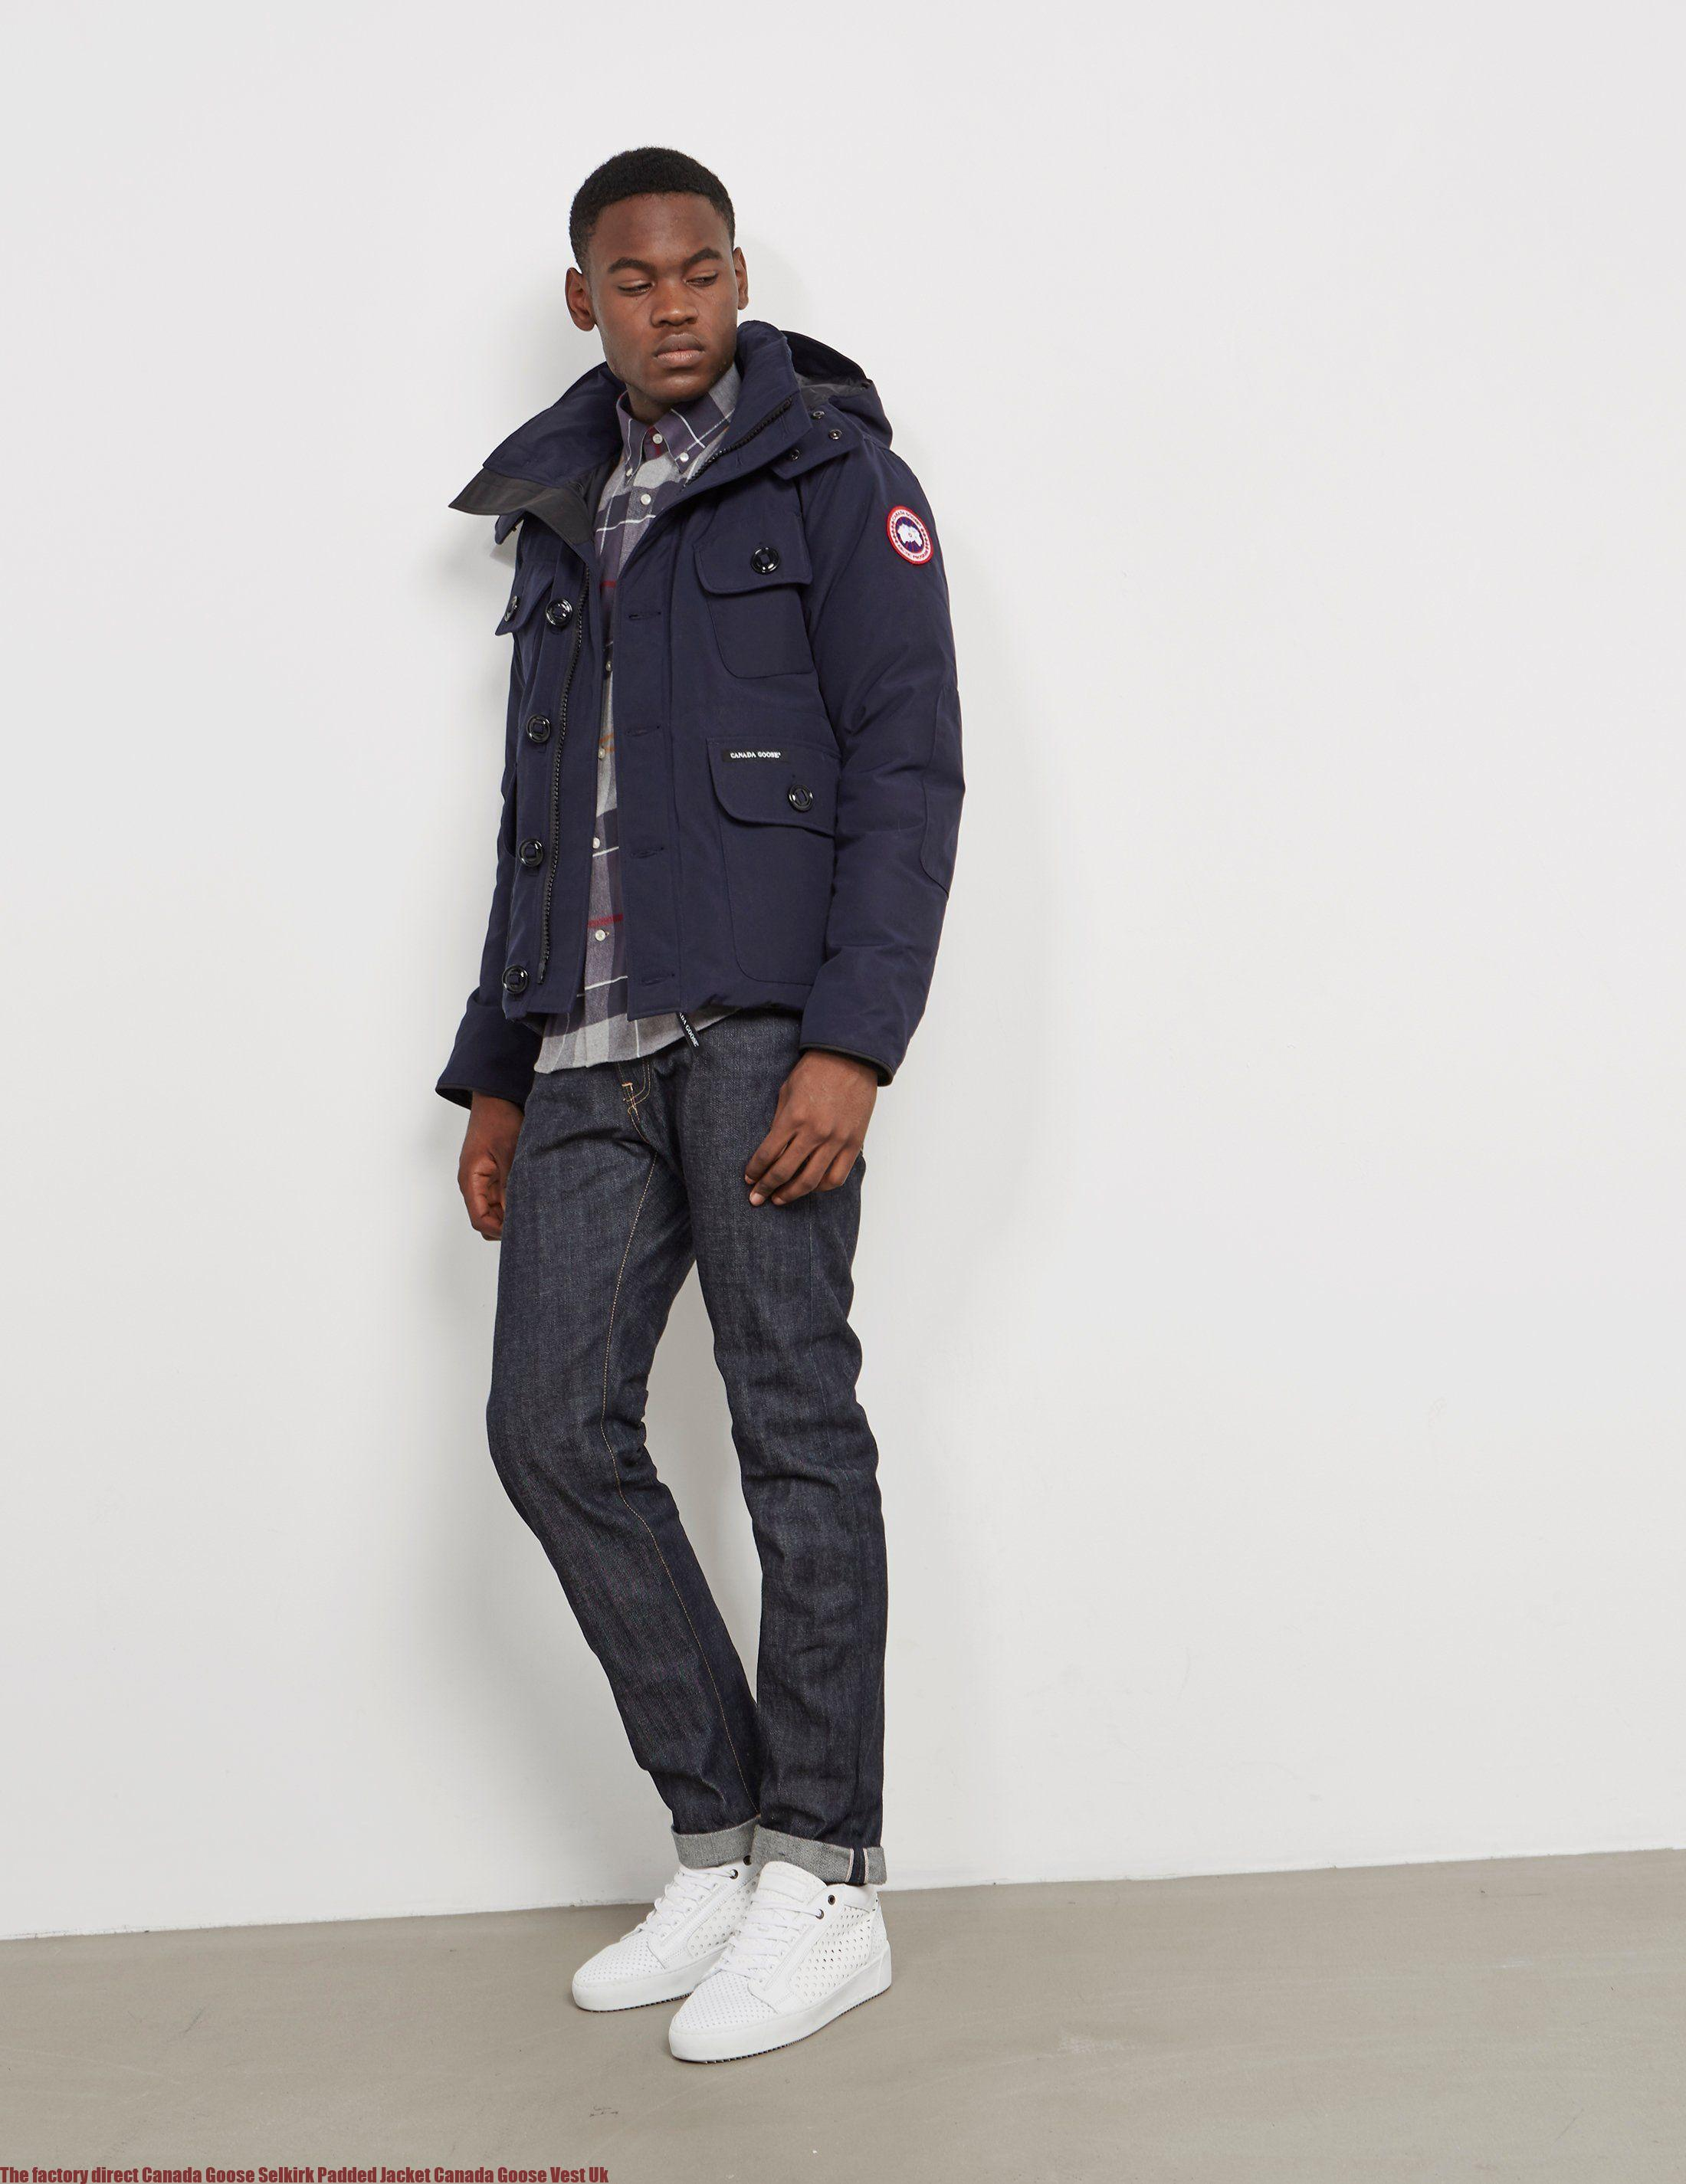 cea0c86b34f The factory direct Canada Goose Selkirk Padded Jacket Canada Goose Vest Uk